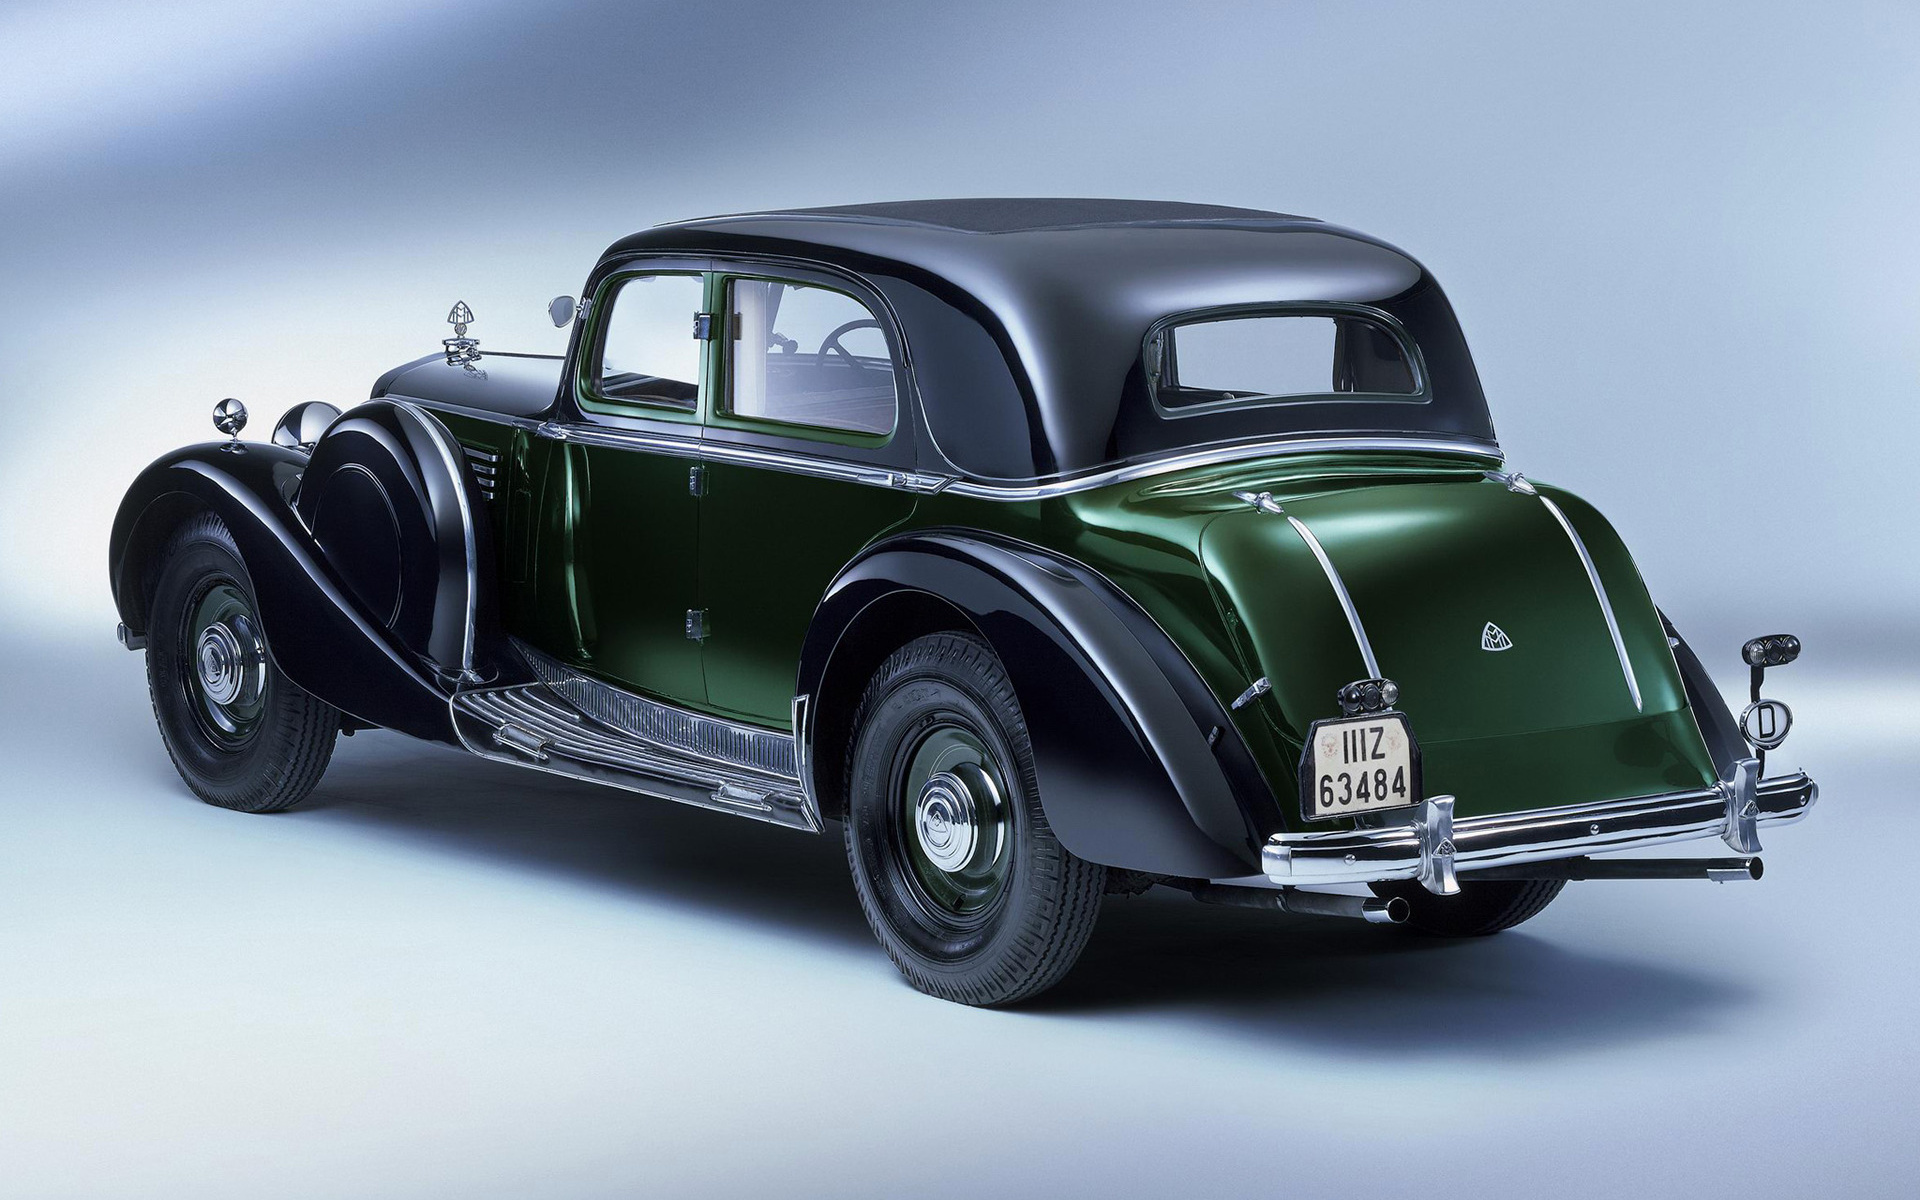 Mercedes Benz Coupe >> 1938 Maybach Zeppelin DS8 Coupe Limousine - Wallpapers and HD Images | Car Pixel